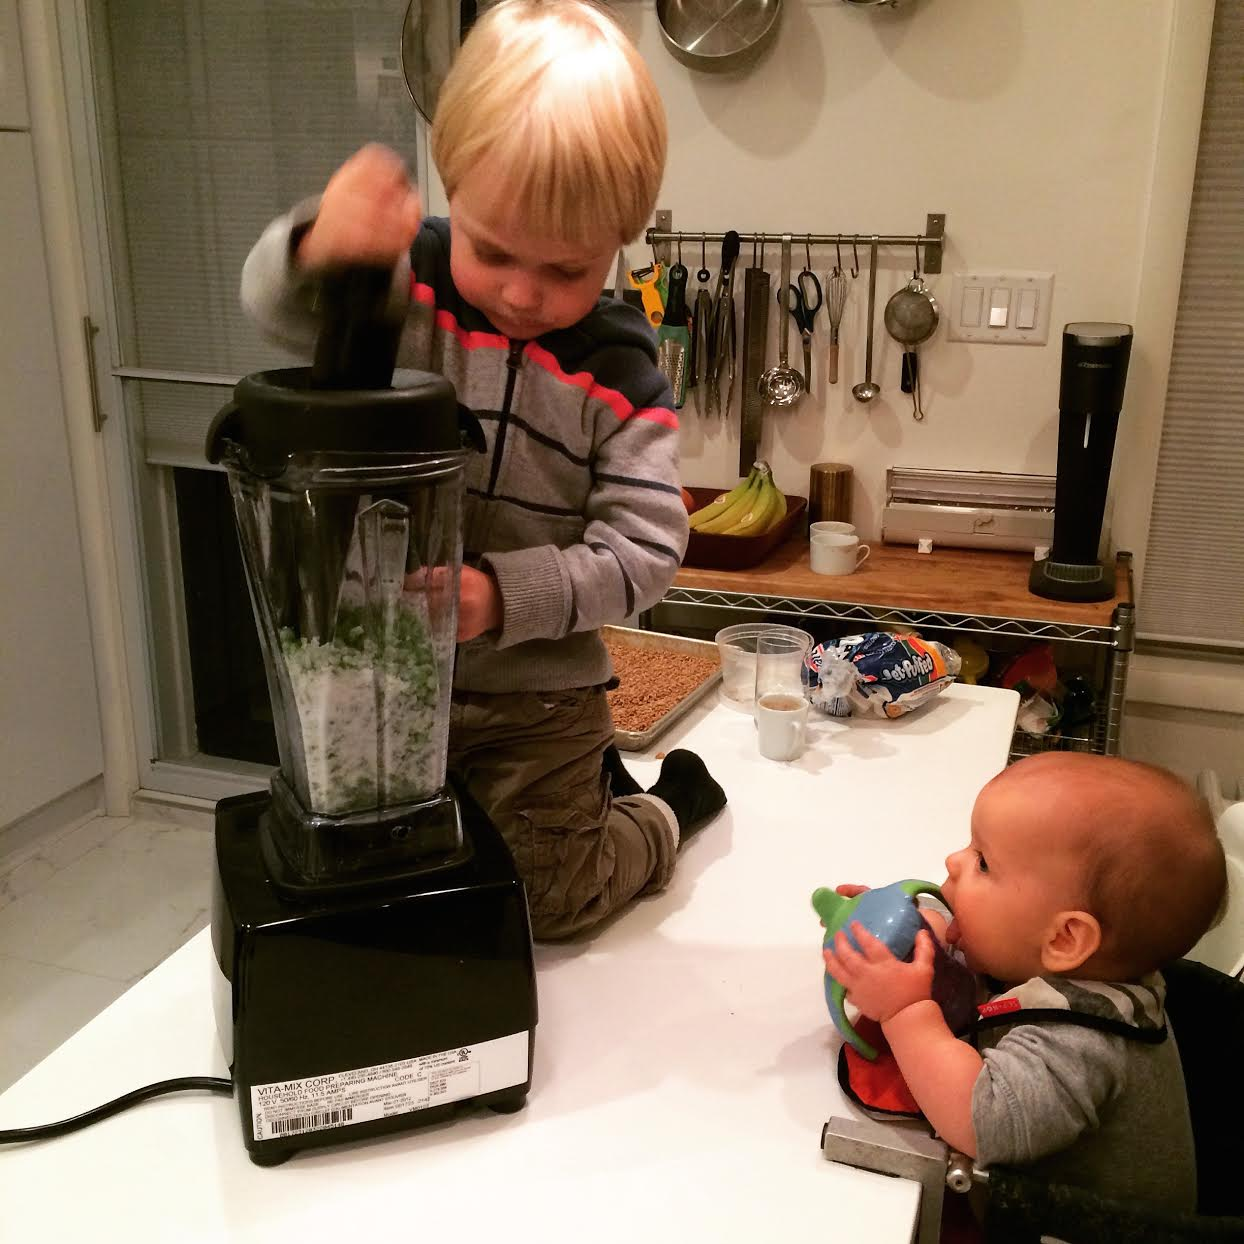 Kid #1 pureeing food for Kid #2. #teachthemyoung.